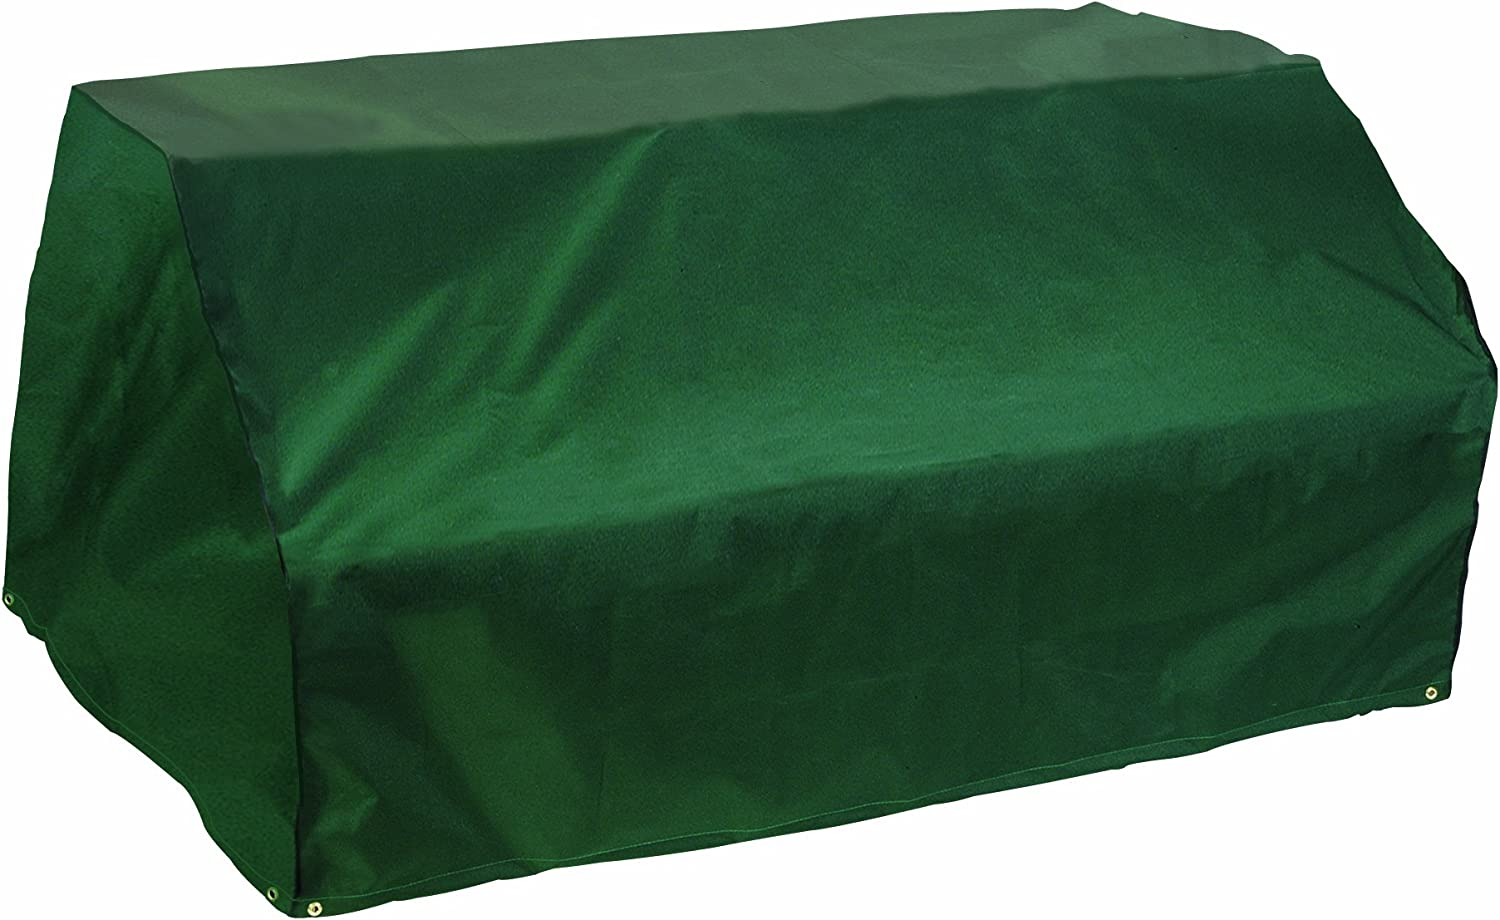 Bosmere C632 Outdoor Cover, 86